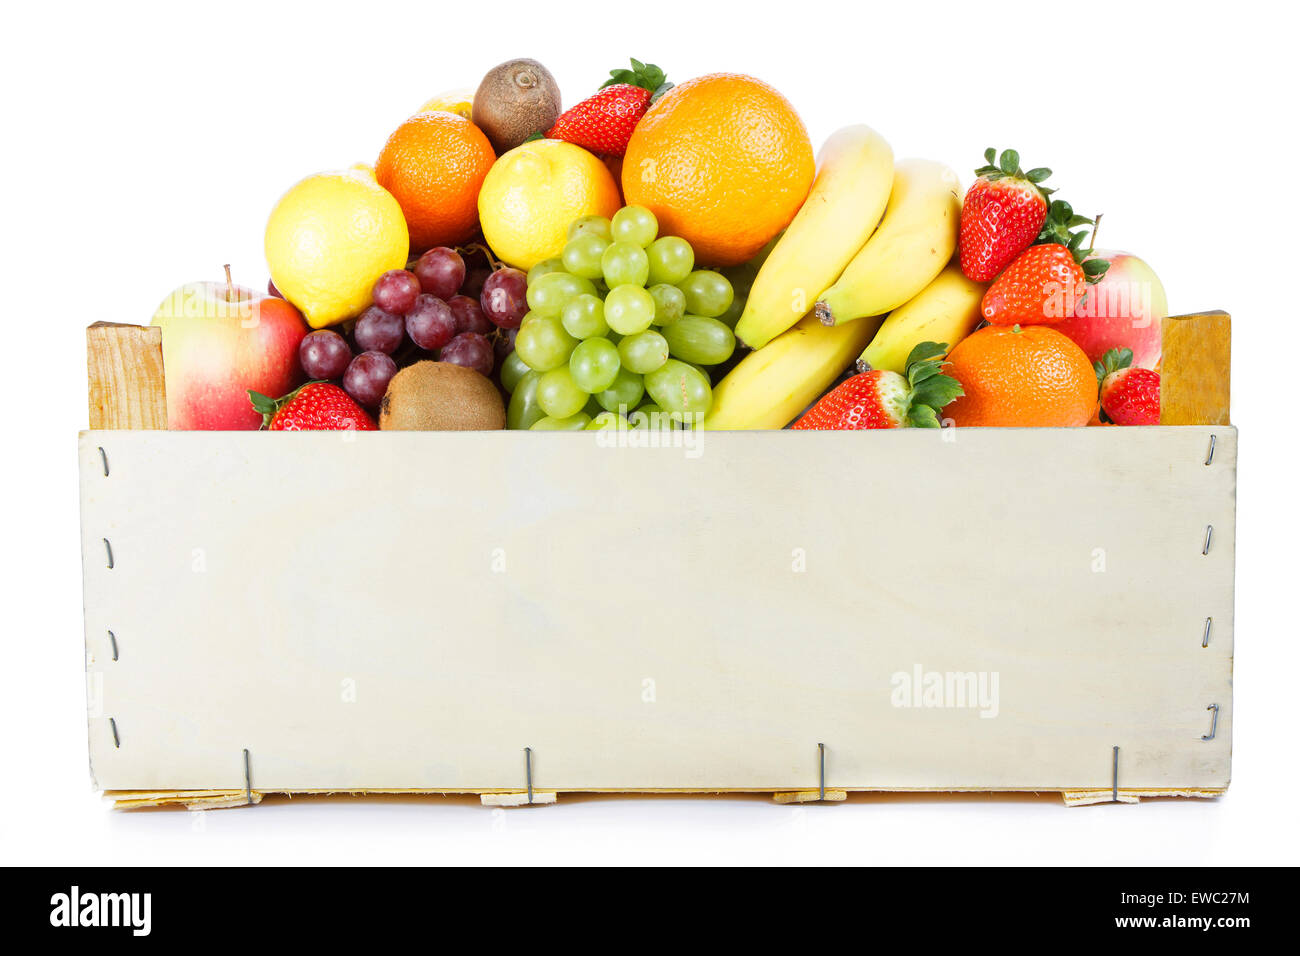 Fruits in wooden box - Stock Image